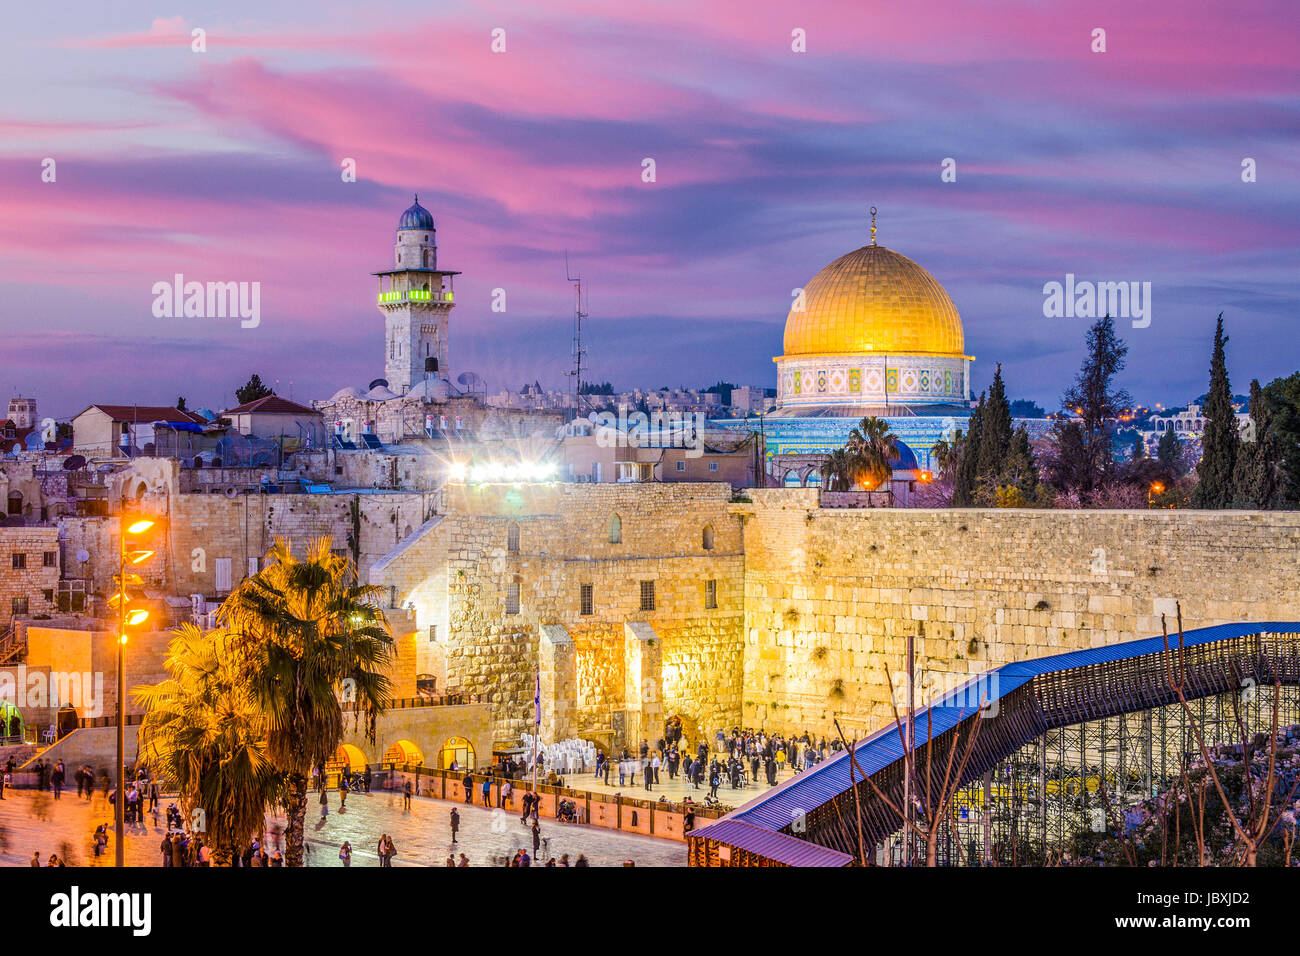 Skyline of the Old City at the Western Wall and Temple Mount in Jerusalem, Israel. - Stock Image